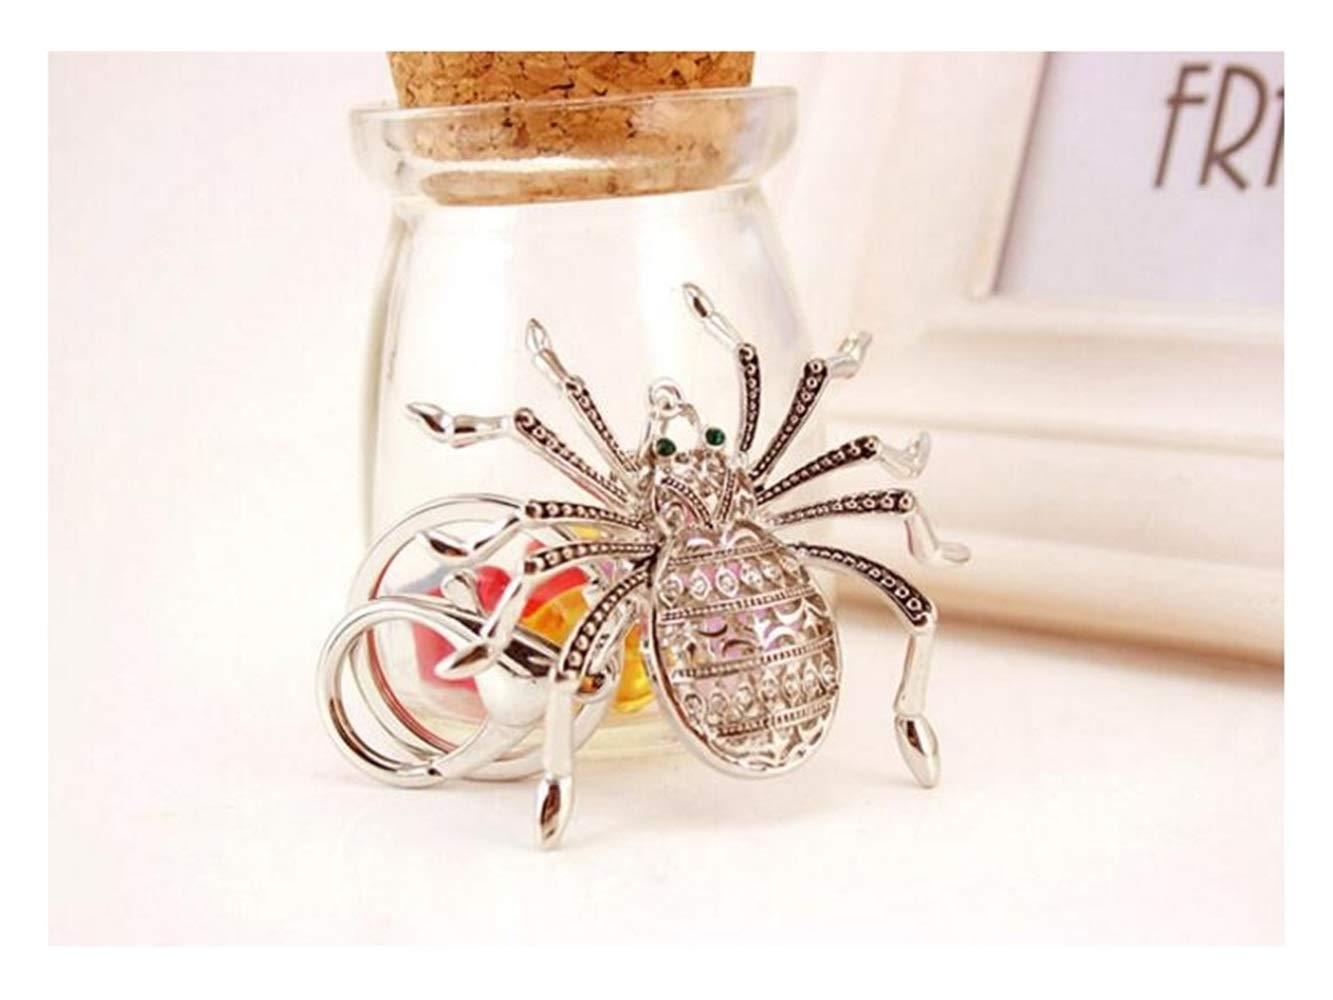 Car Keychain, Exquisite Personality Big Spider Keychain Animal Key Trinket Car Bag Key Holder Decorations(Silver) for Gift by Huasen (Image #3)